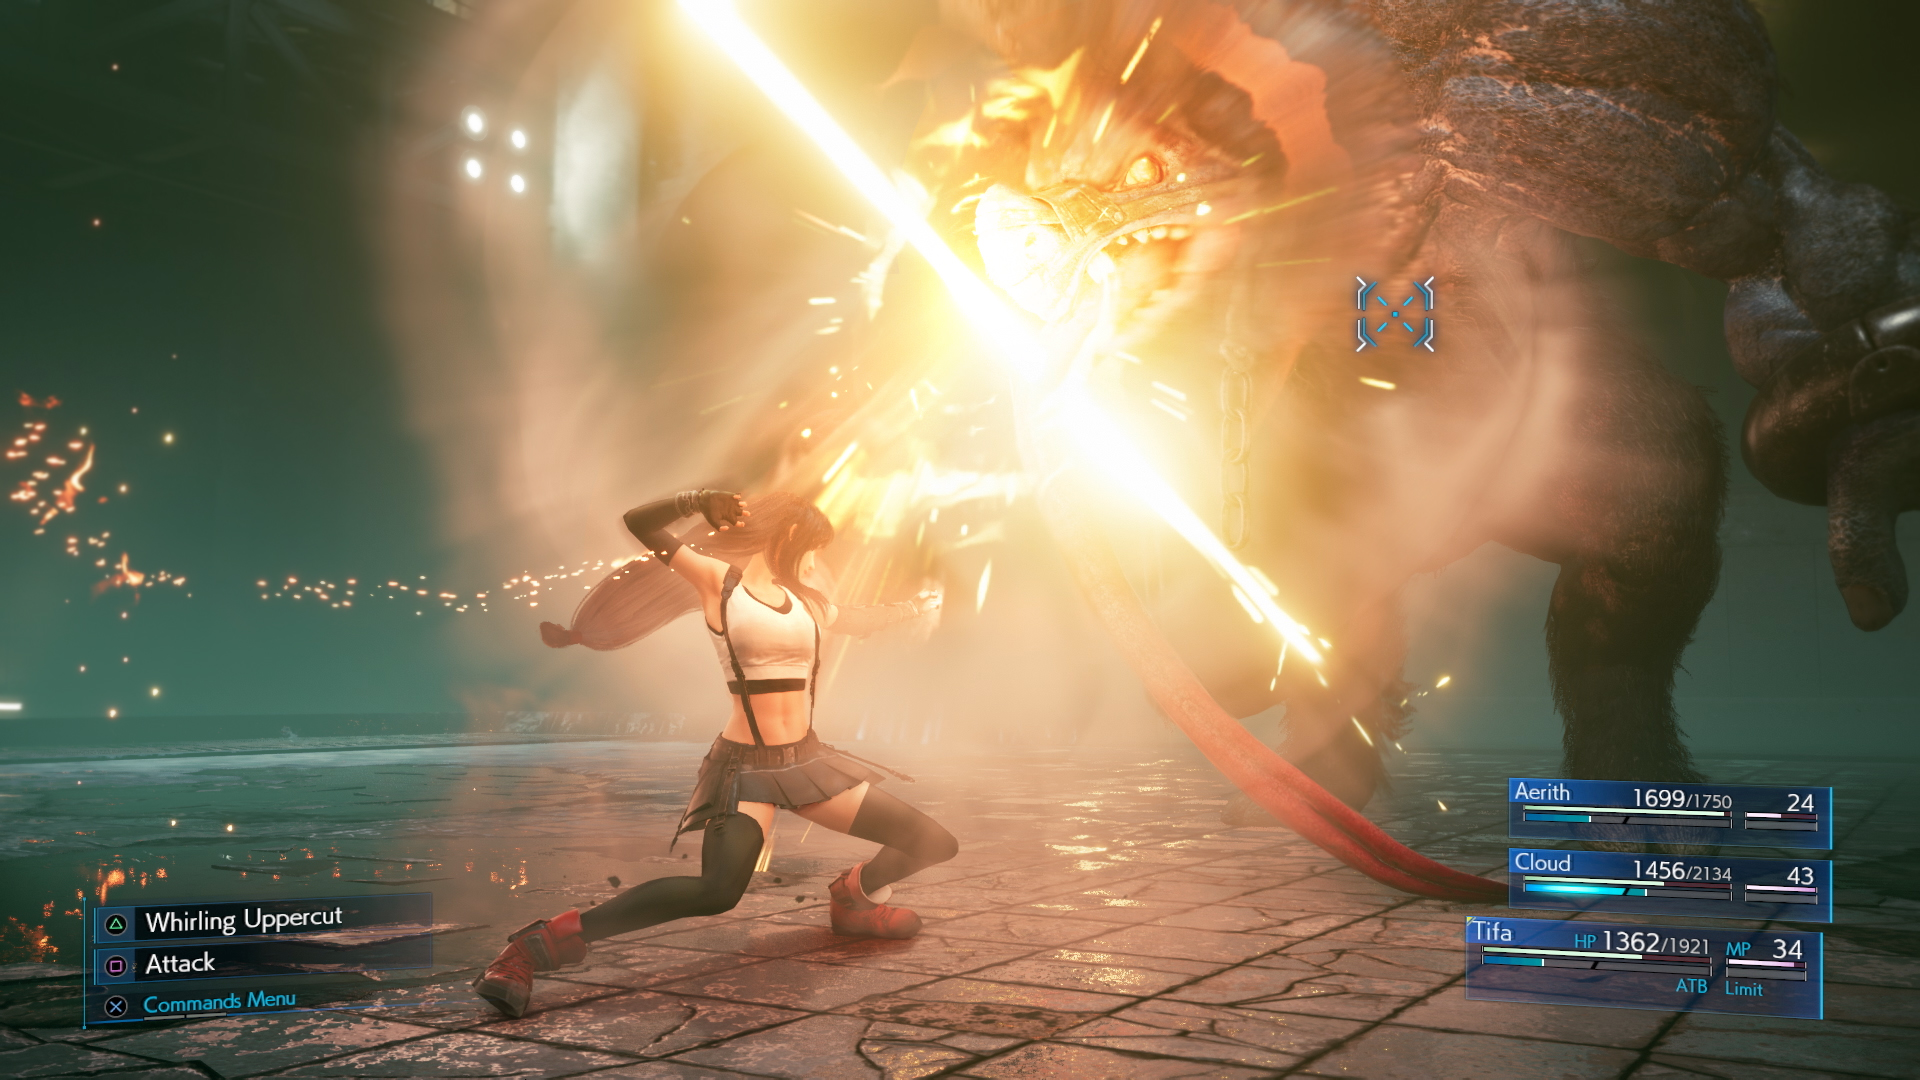 Get A Glimpse Of A Few Of Tifa's Amazing Fighting Moves In Final Fantasy VII Remake